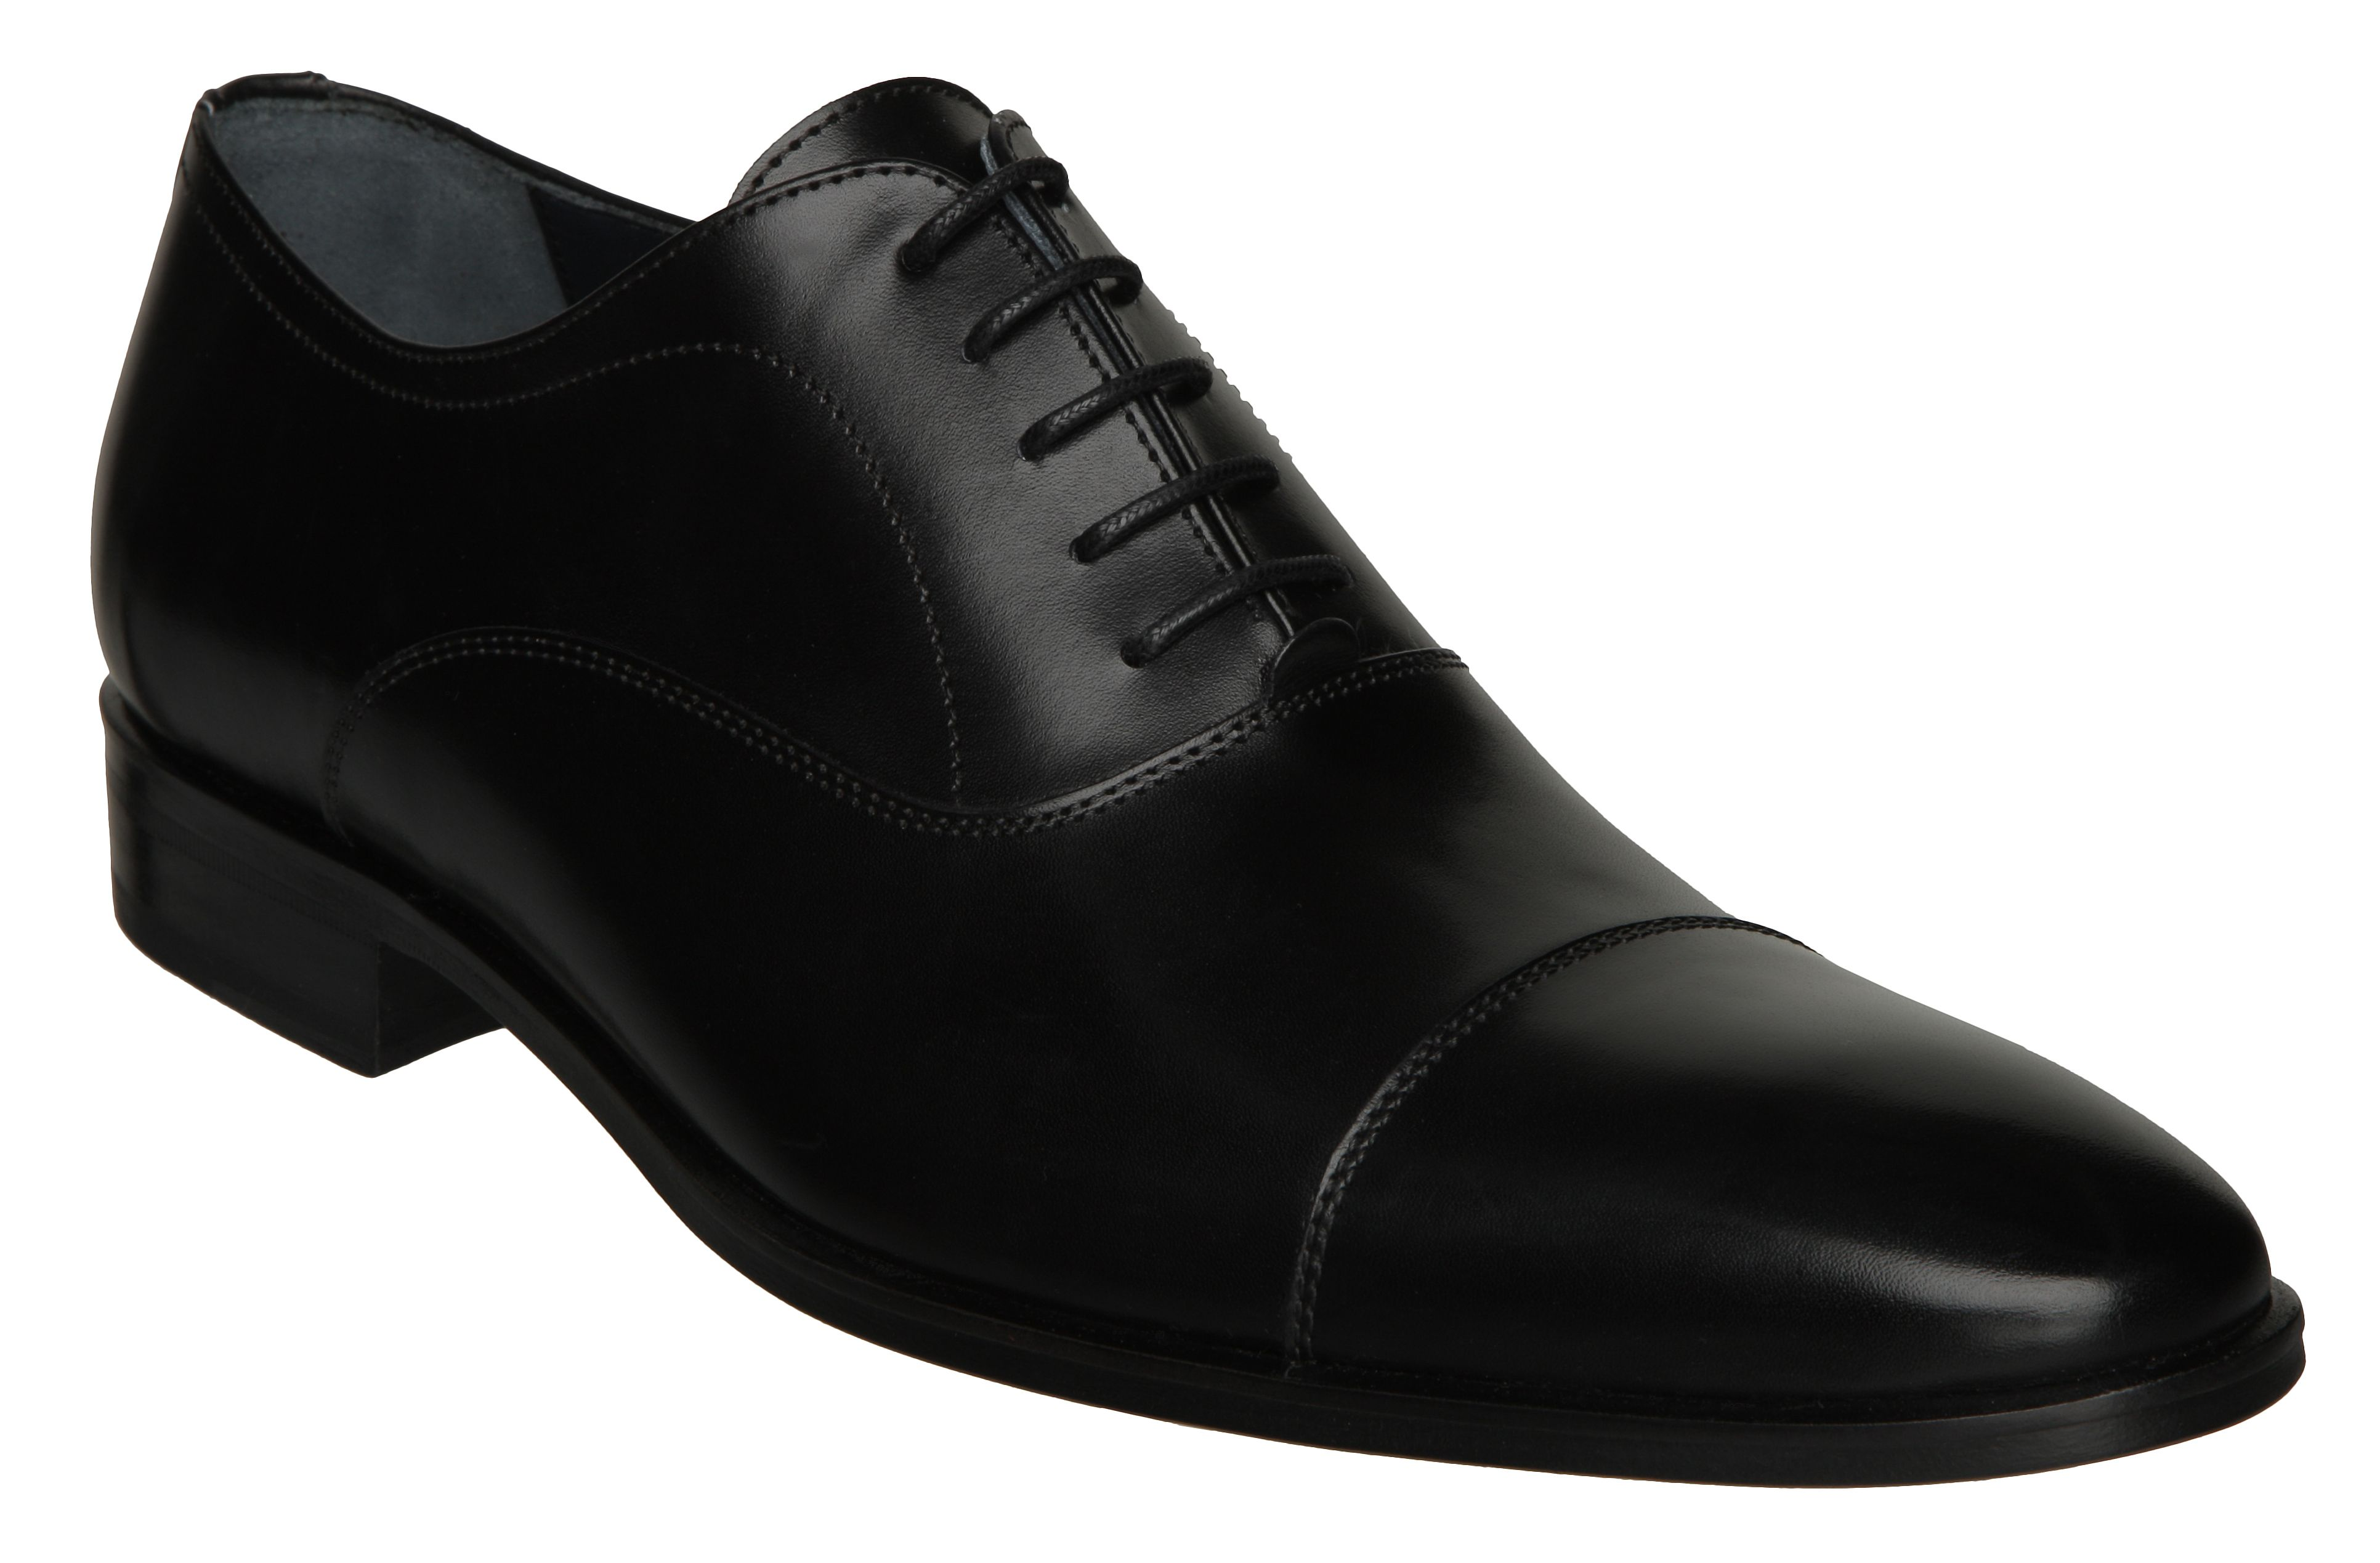 Spitfire formal shoes